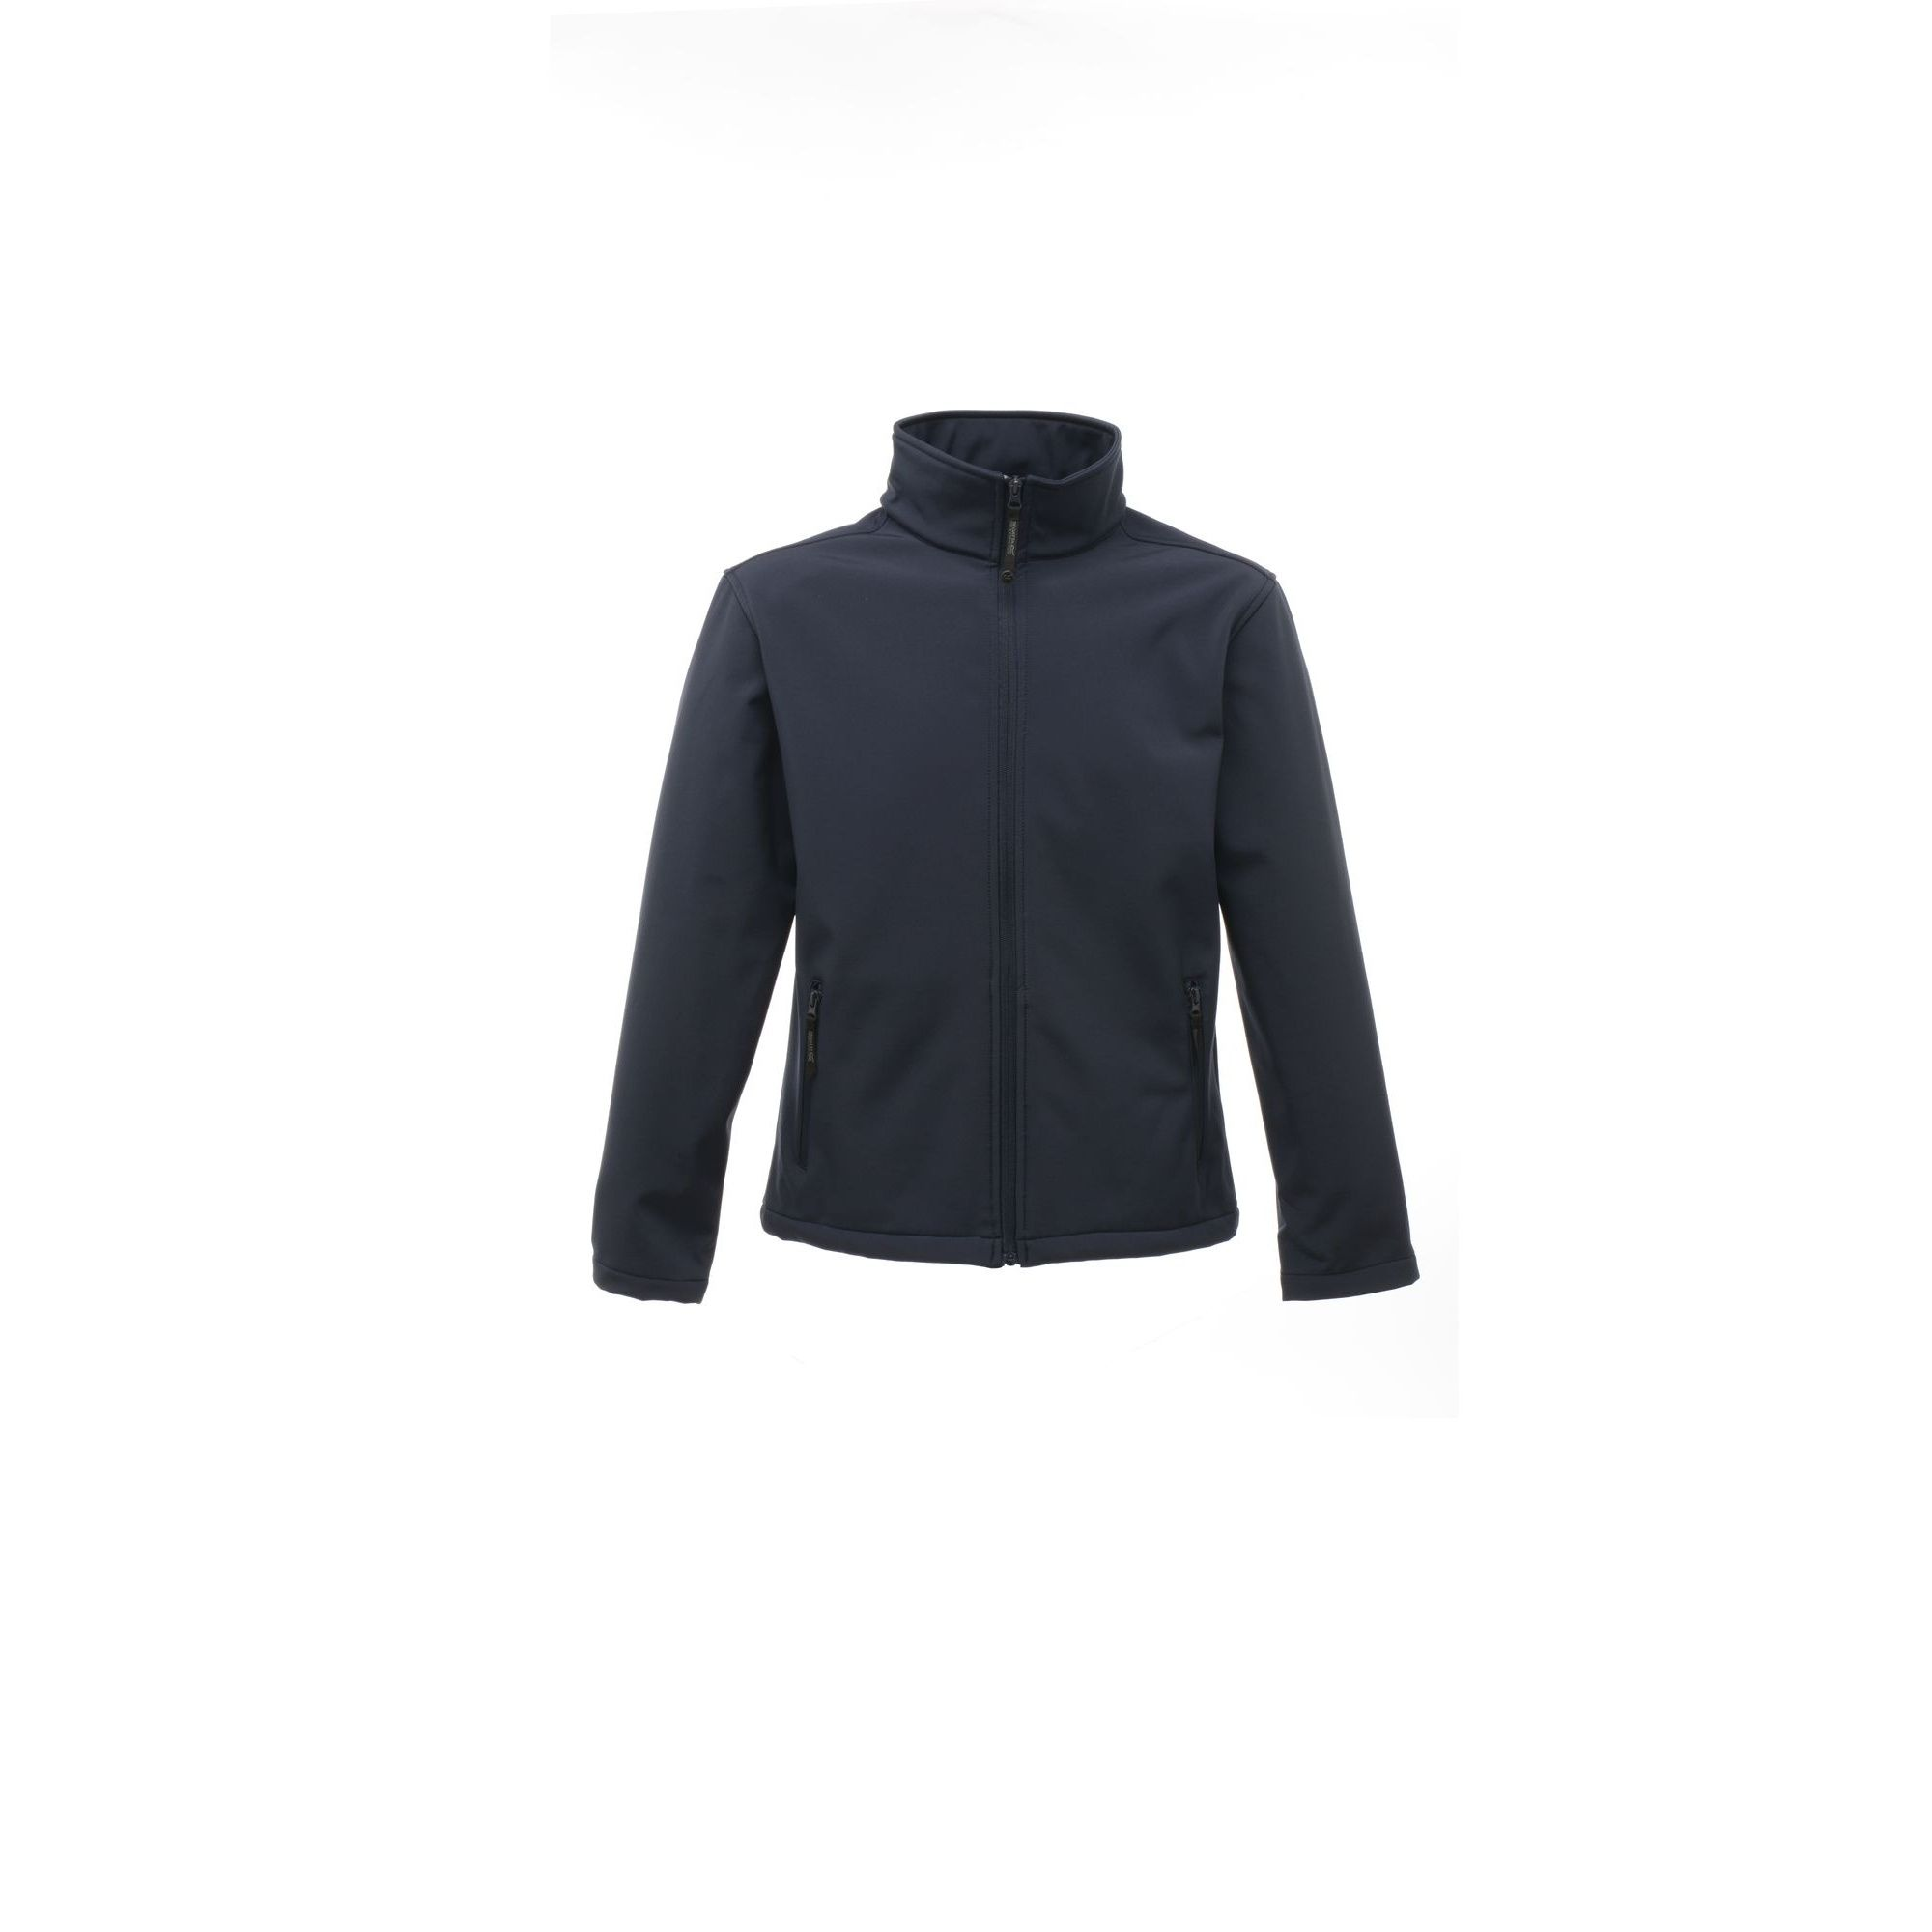 Regatta Professional Mens Classic 3 Layer Zip Up Softshell Jacket